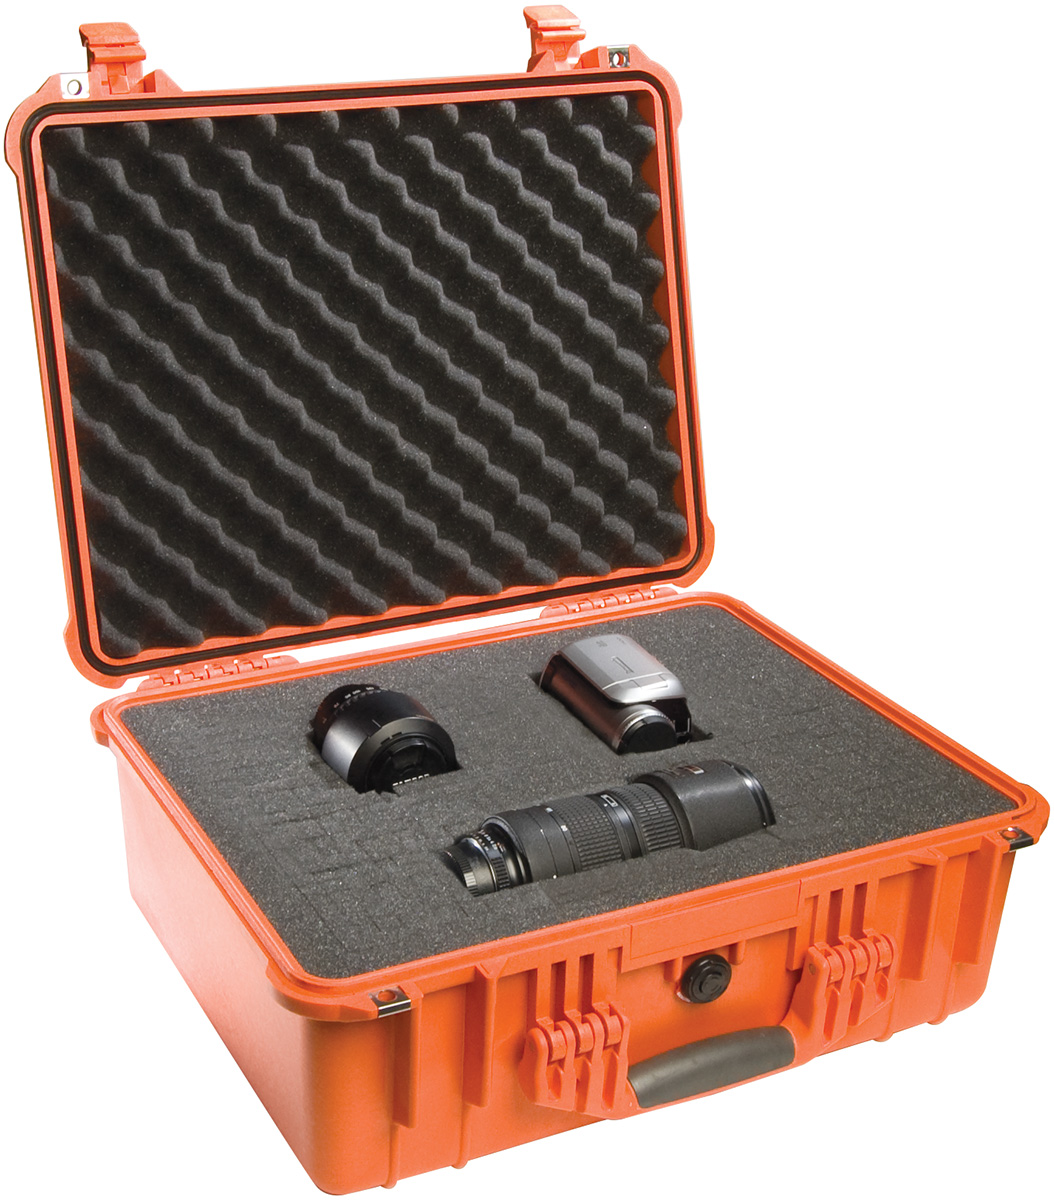 pelican 1550 orange hard waterproof camera case